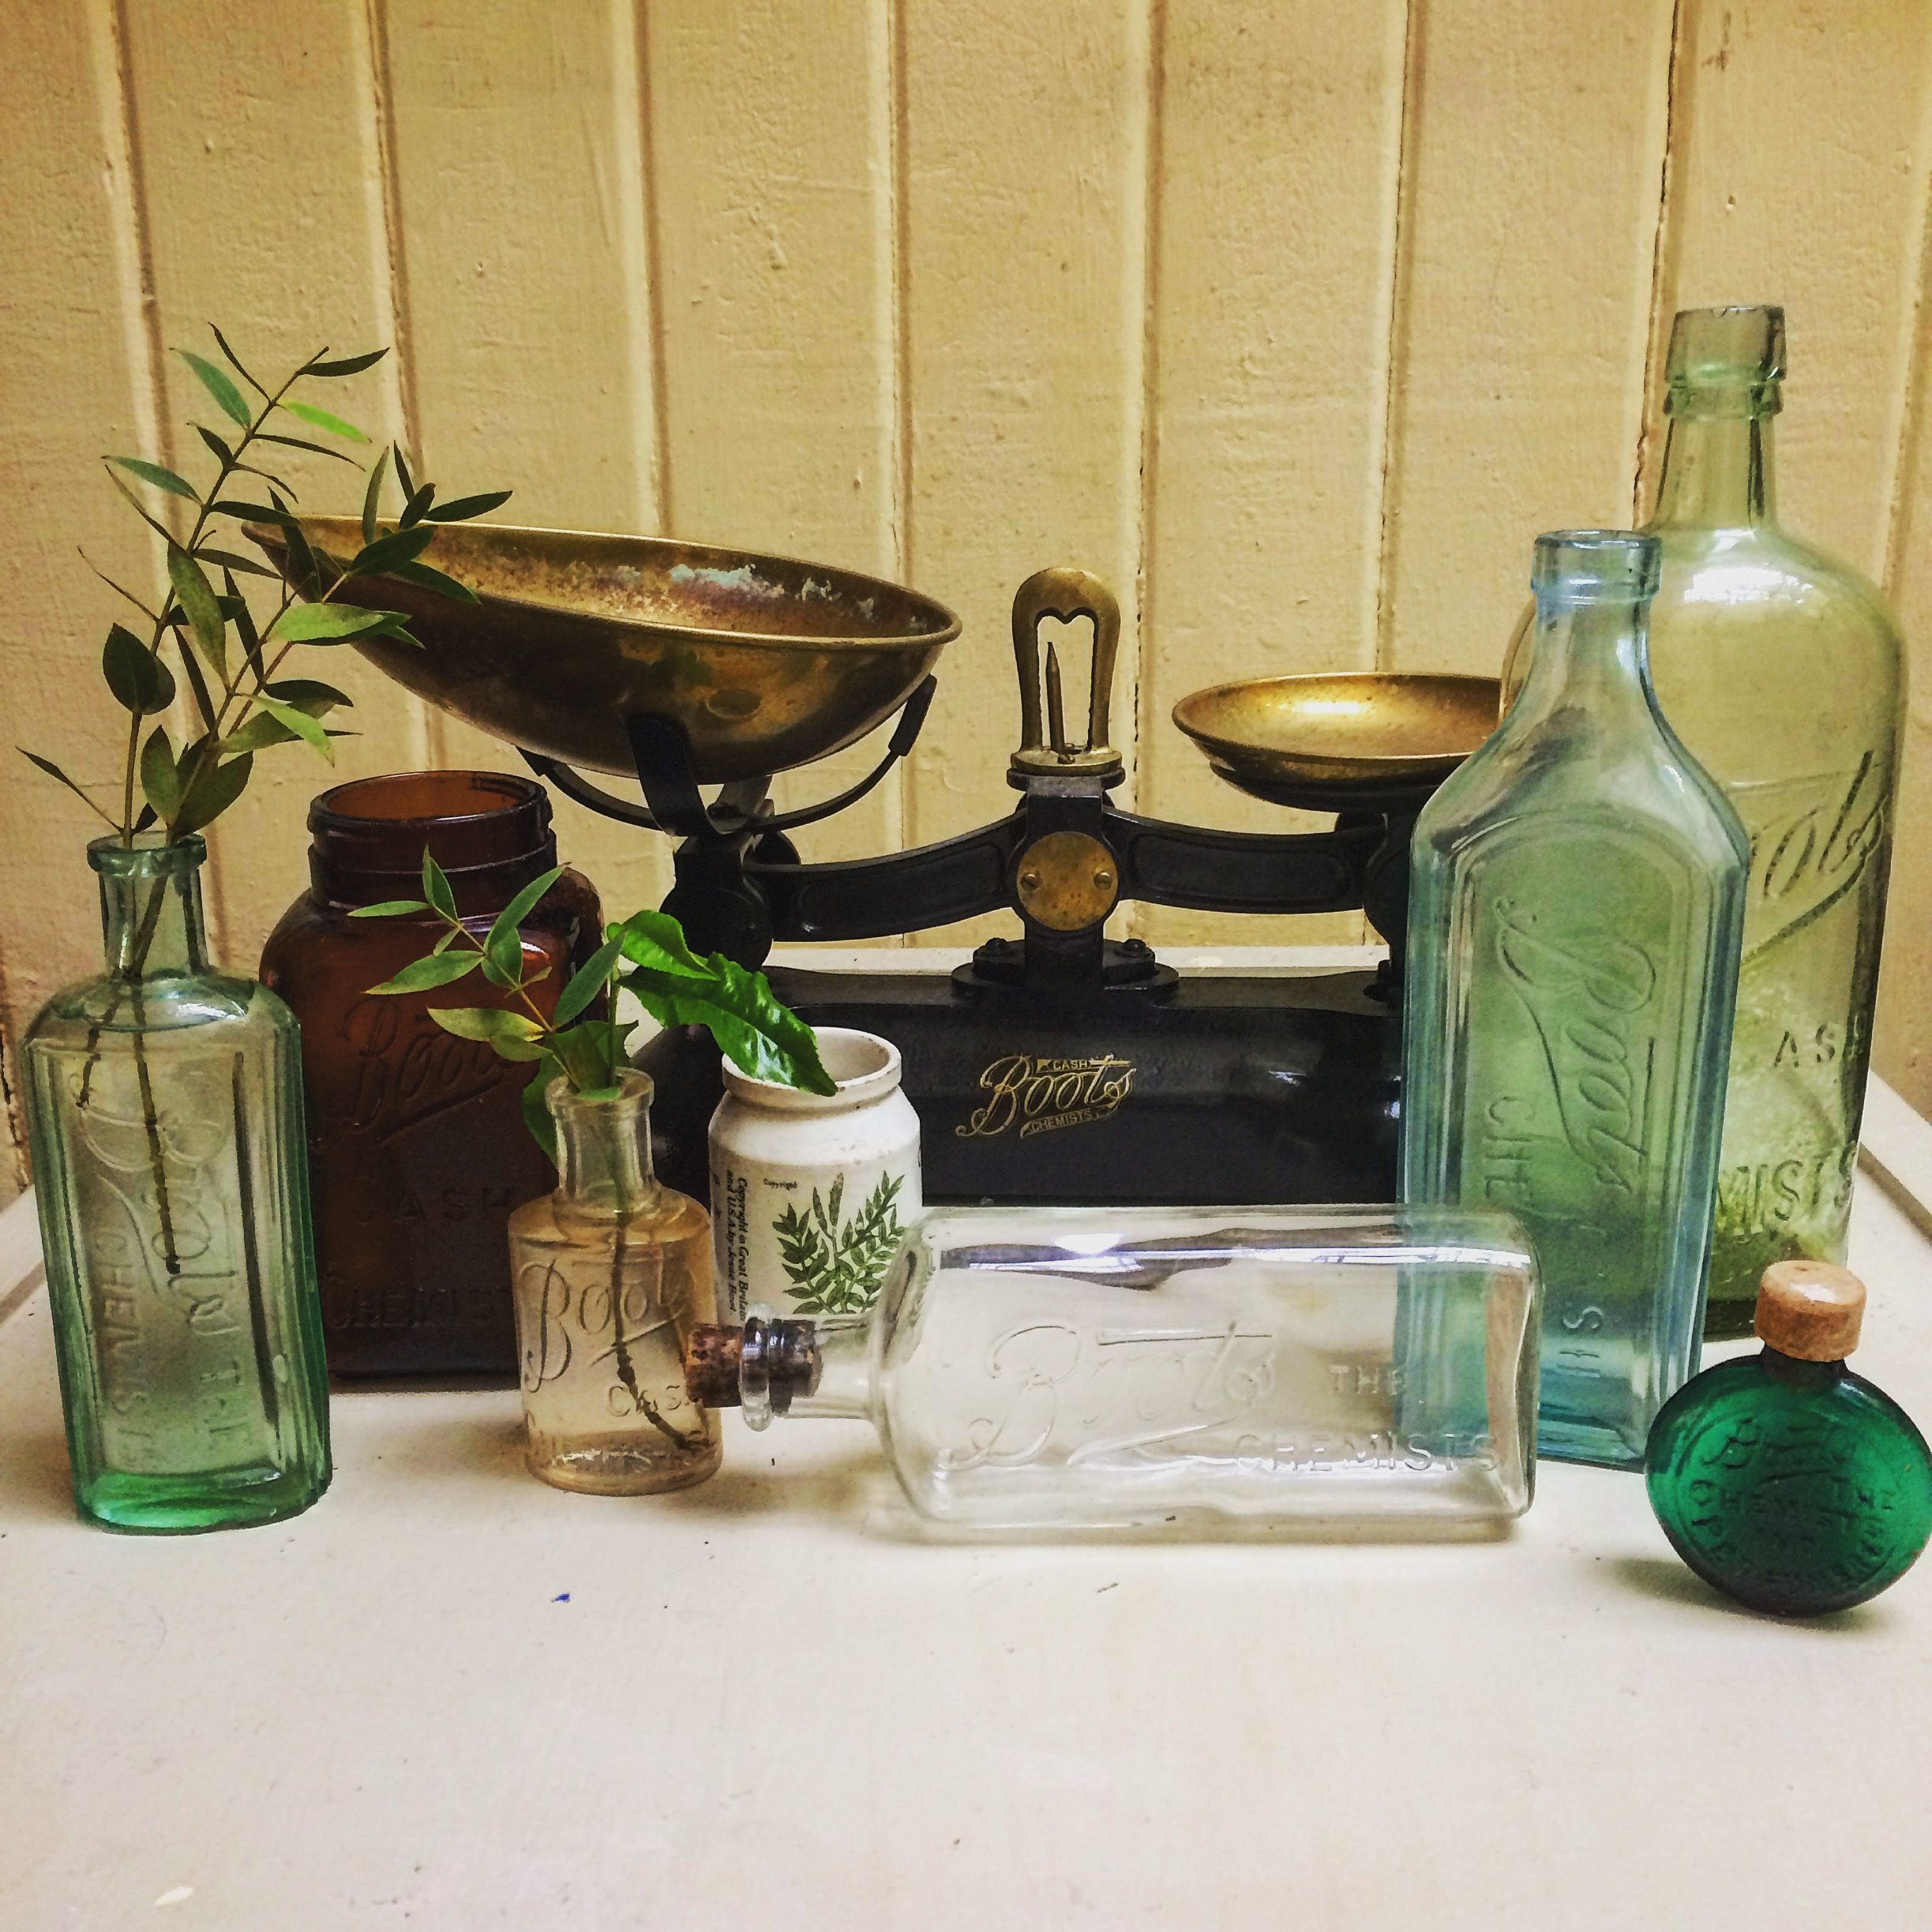 Original Boots apothecary bottles and scales.JPG